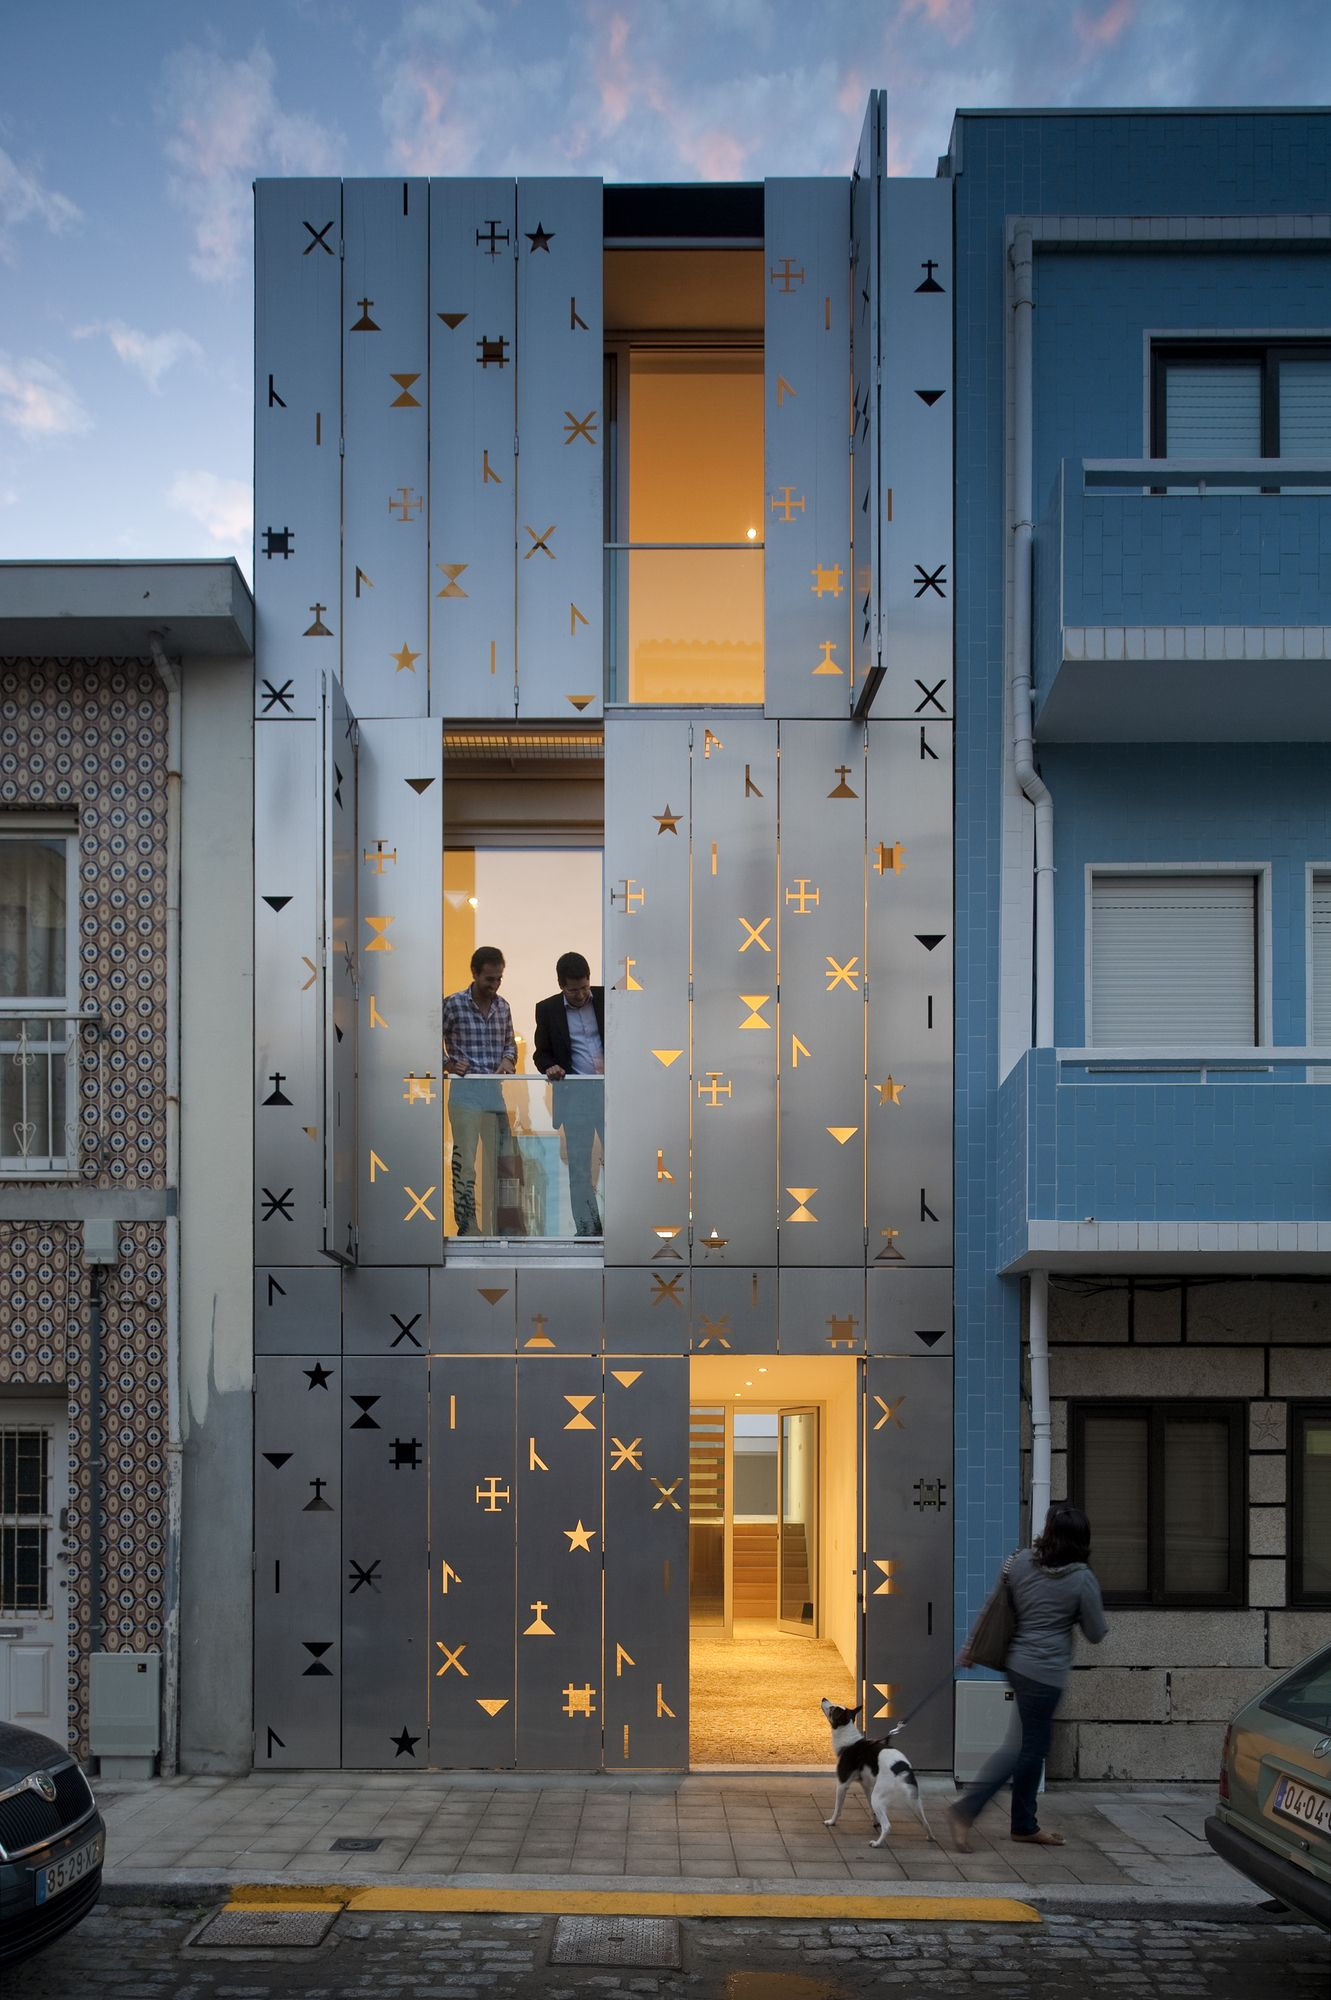 Elegant 35 Cool Building Facades Featuring Unconventional Design Strategies Part 24